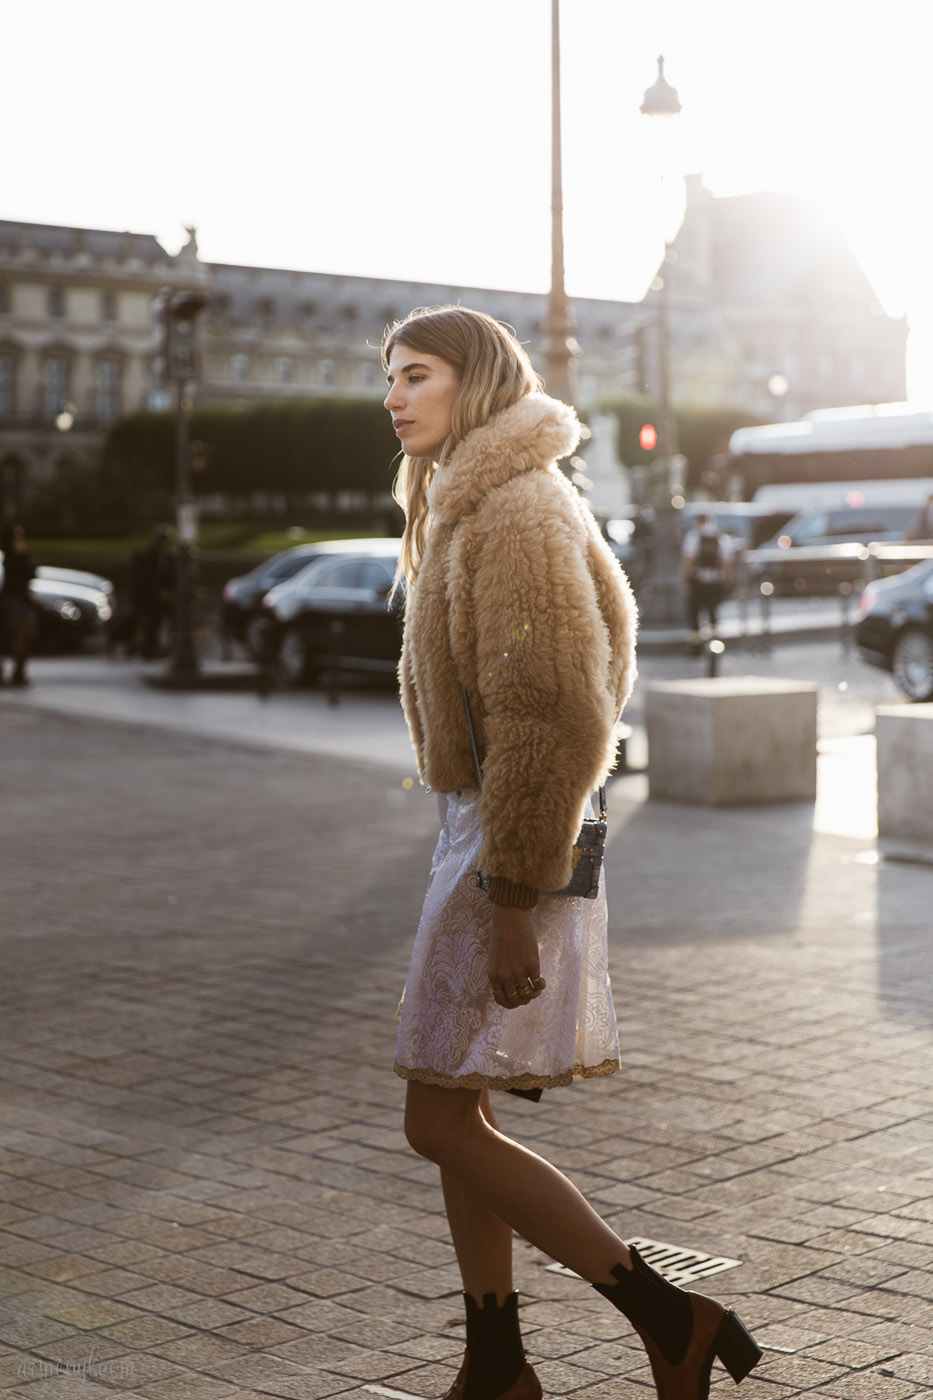 Veronika Heilbrunner Street Style Fall Fashion Looks at Louis Vuitton SS 2018 Show in Paris photo by Fashion Photographer Armenyl